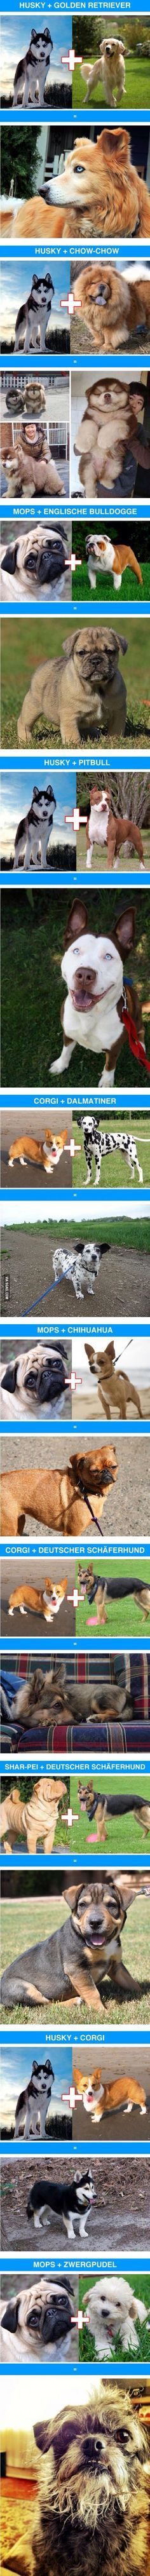 Dog cross-breeds